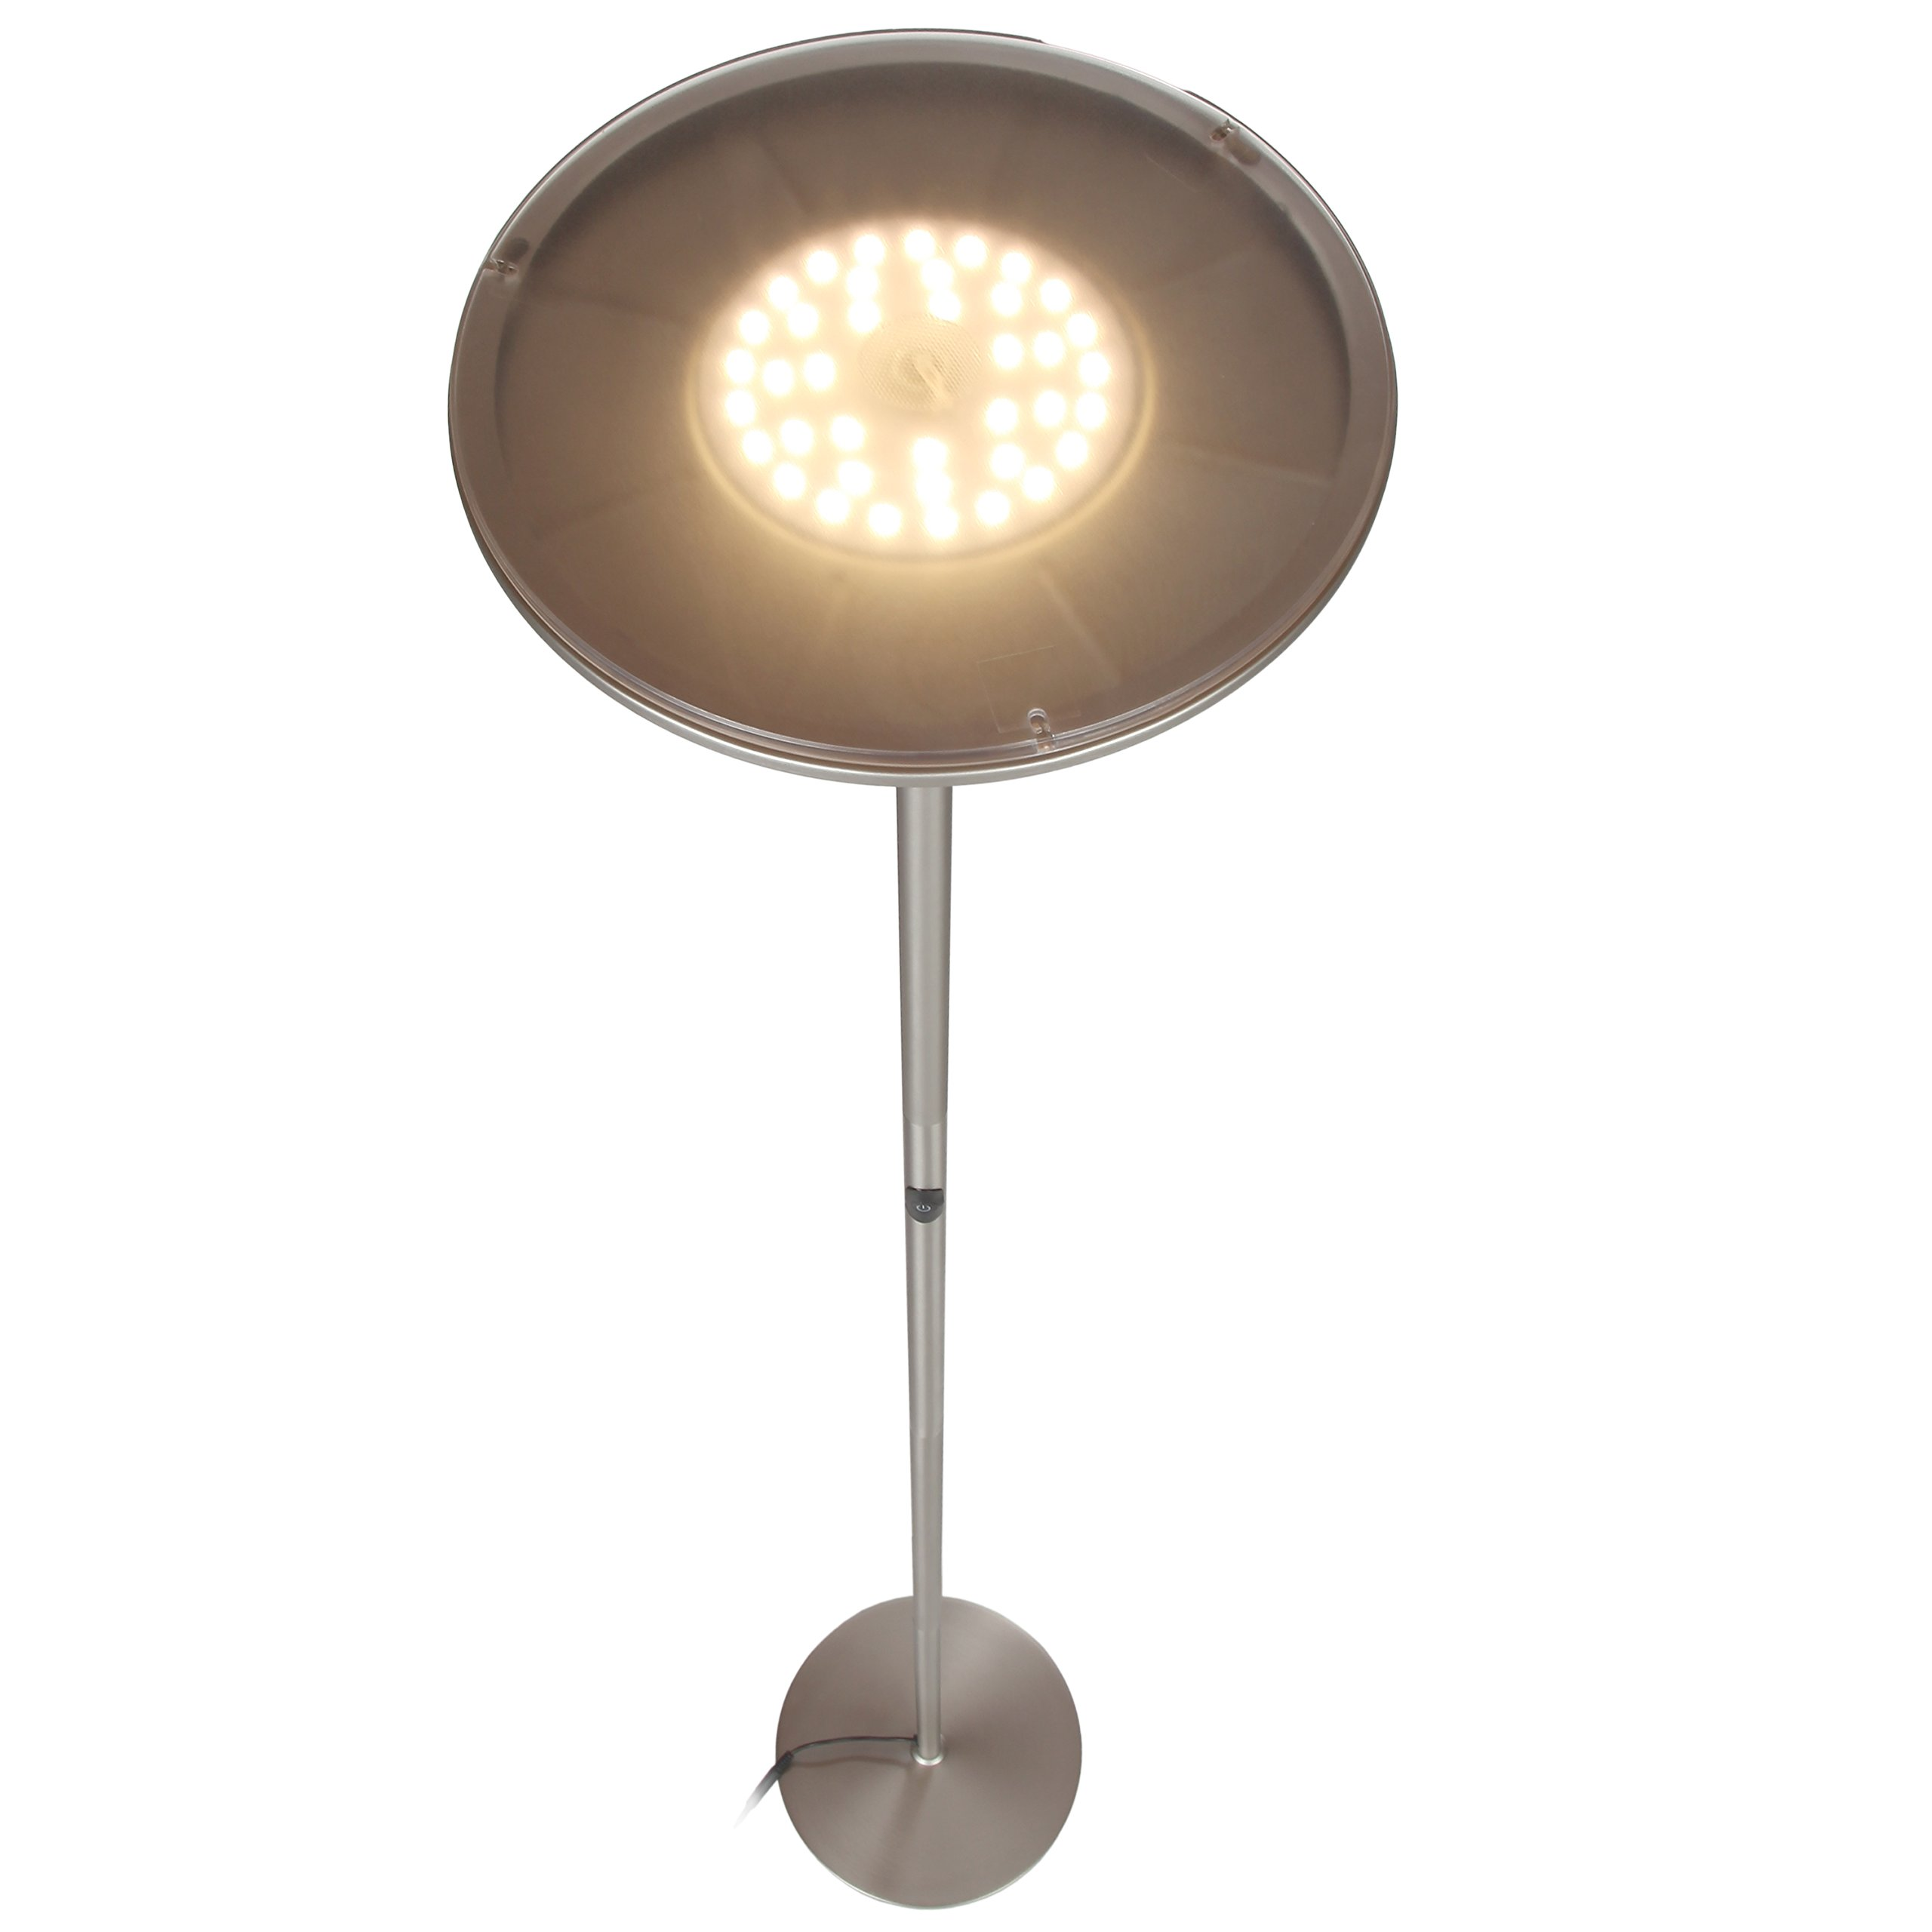 Brightech Sky Led Torchiere Floor Lamp Dimmable 30